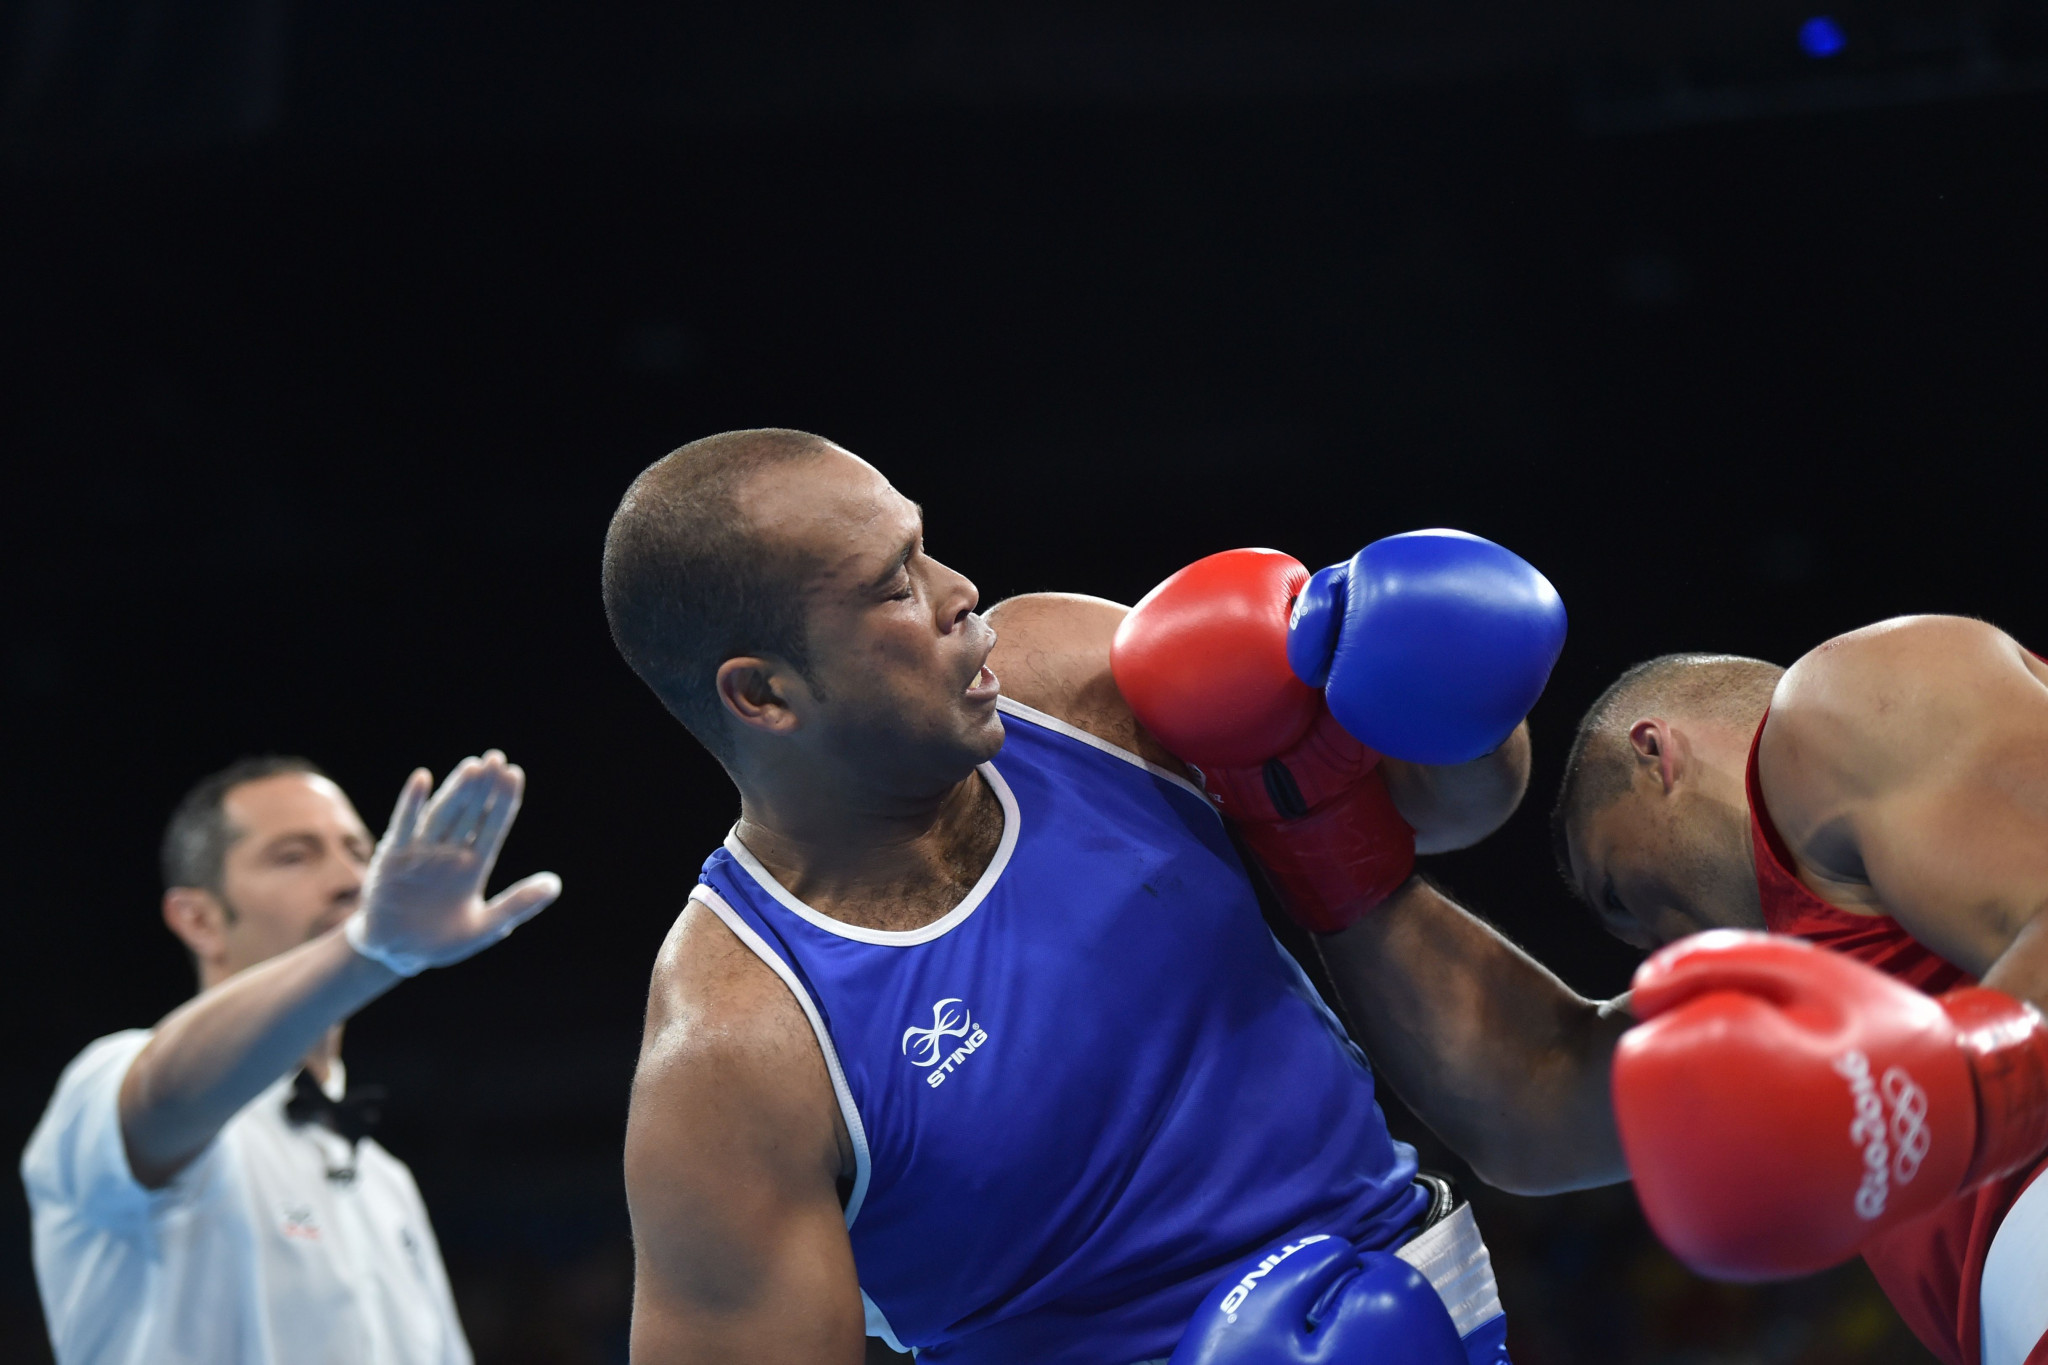 Rio 2016 Olympian Morais loses first bout at at African Olympic boxing qualifier